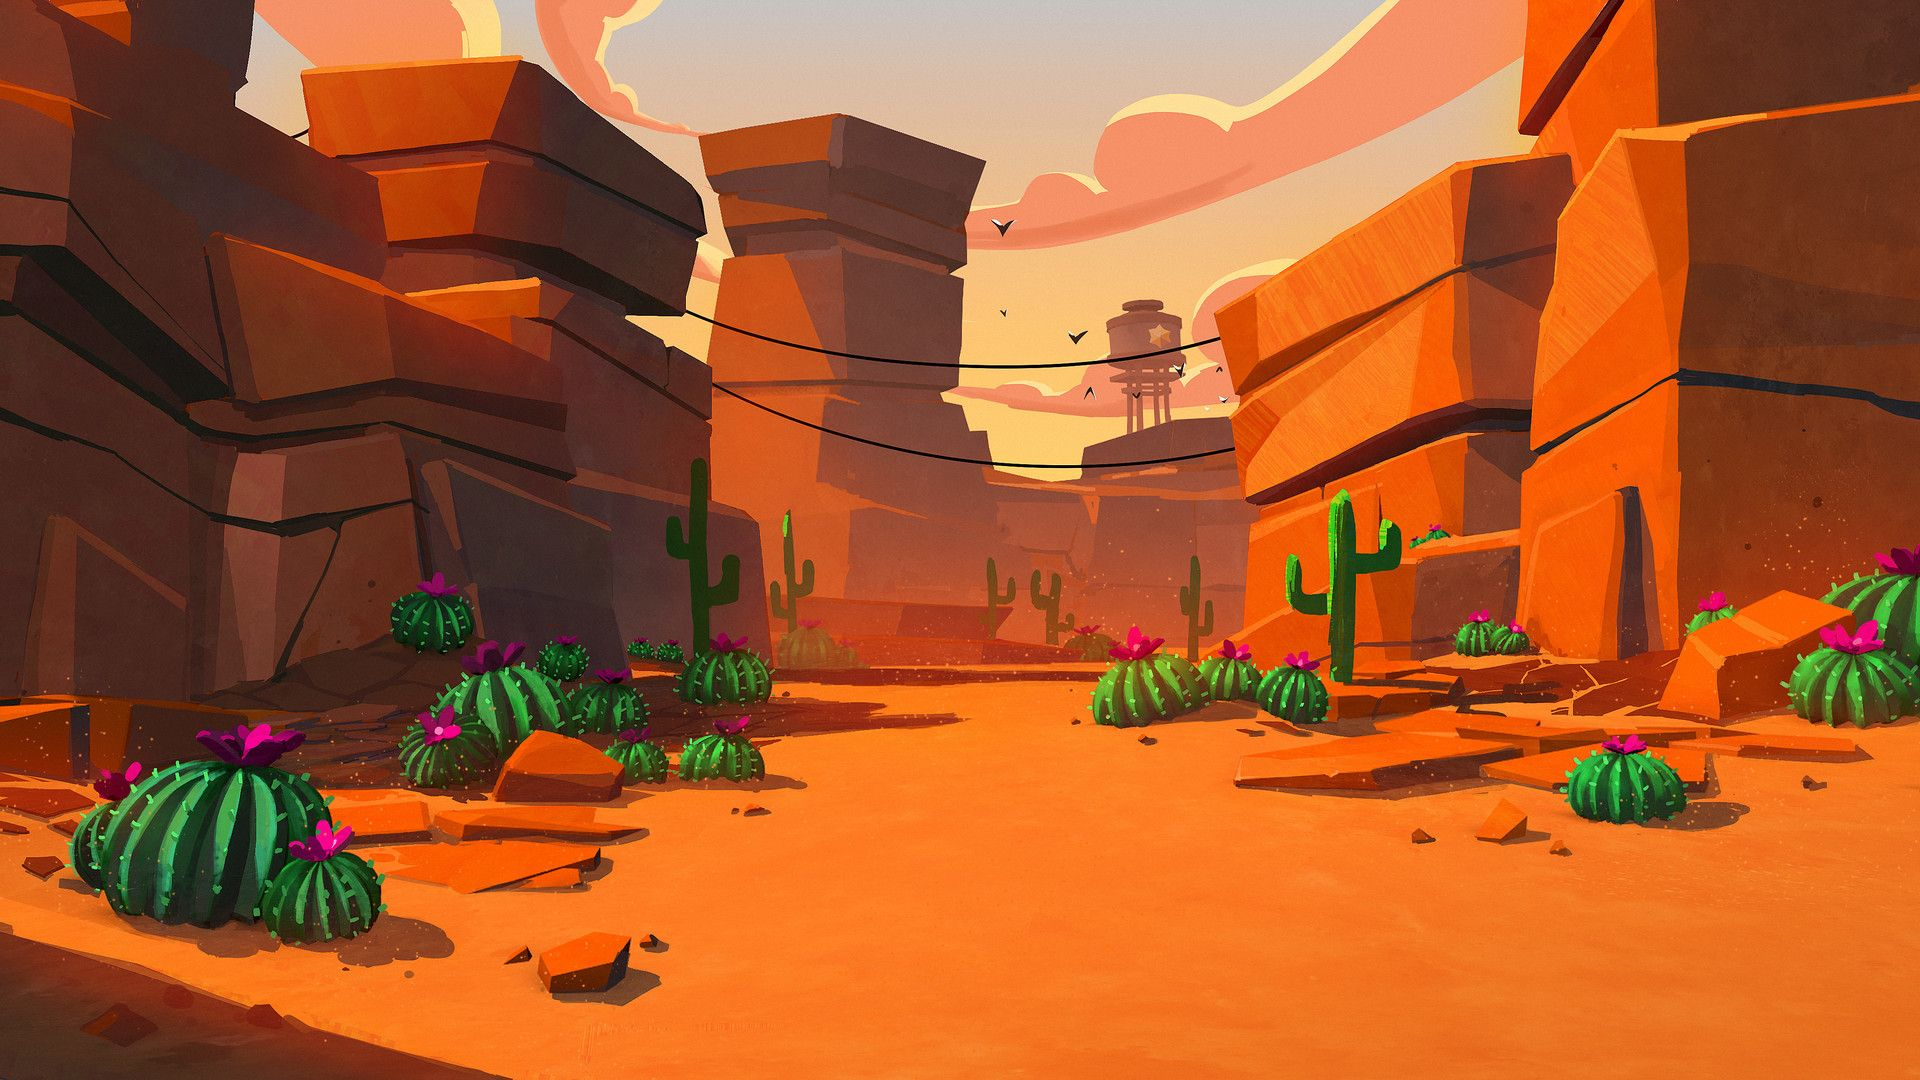 Artstation Brawl Stars Environment Art Tim Kaminski Gameart в